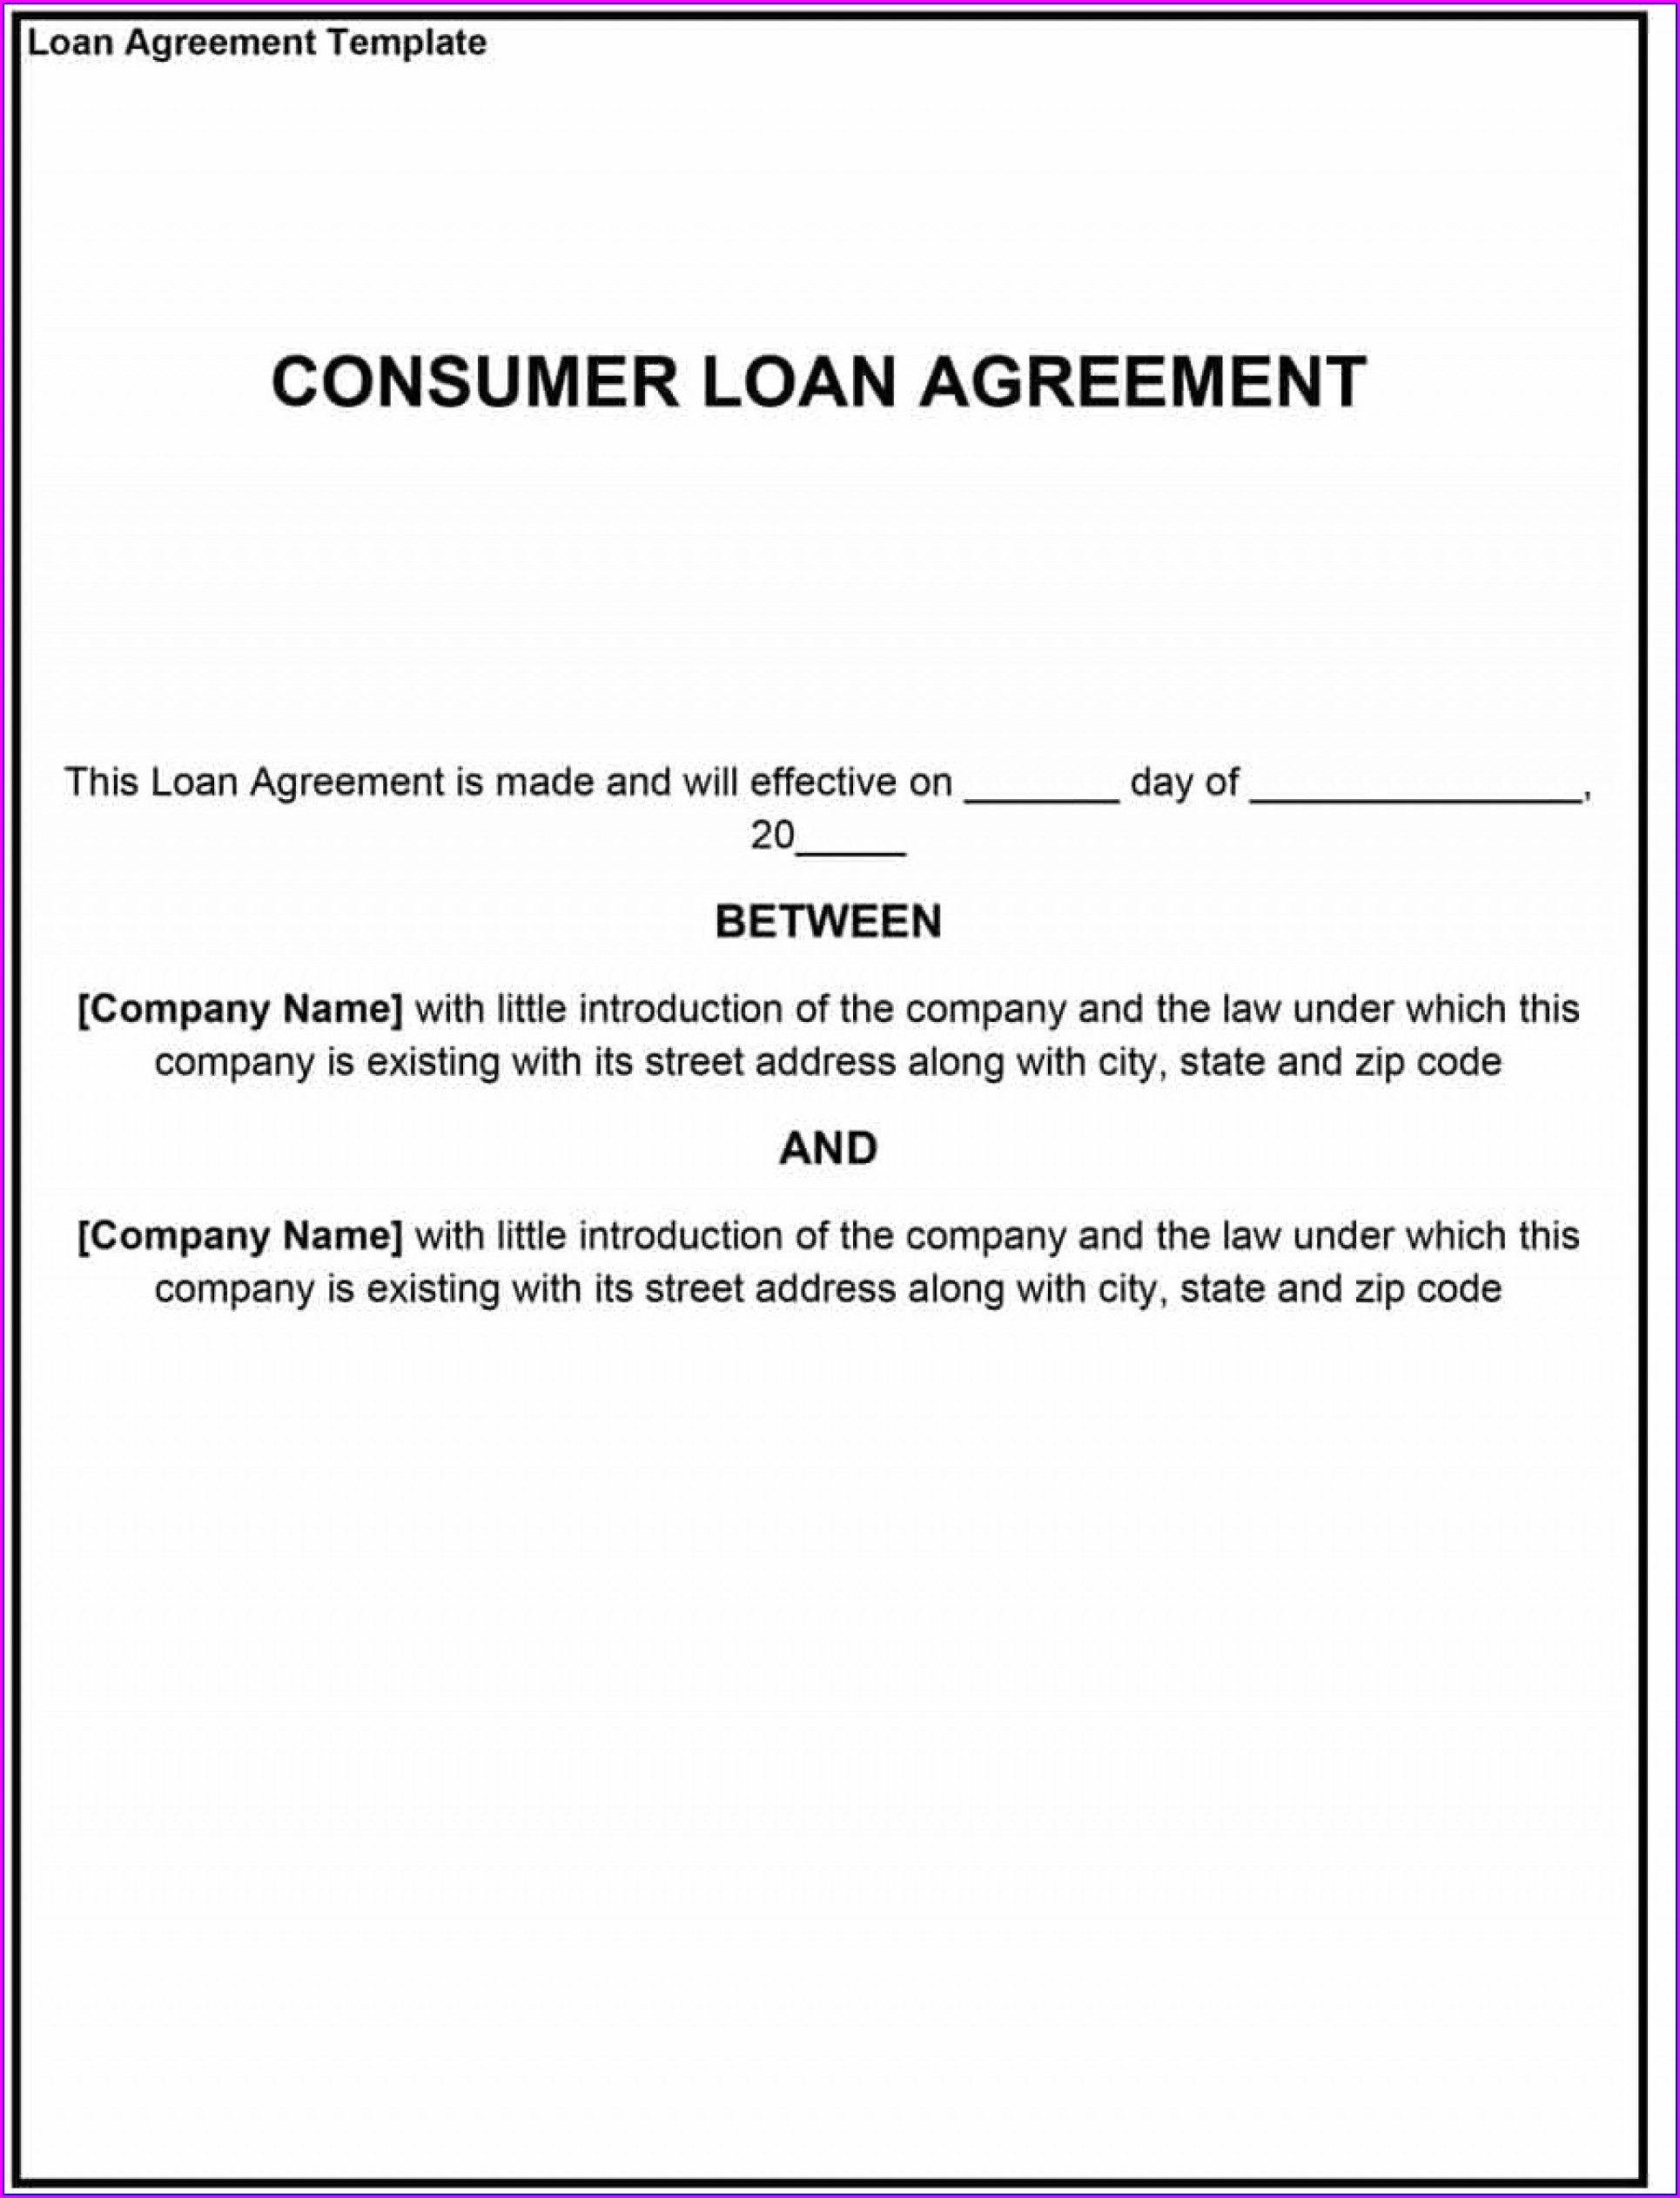 Free Loan Agreement Template Microsoft Word Australia